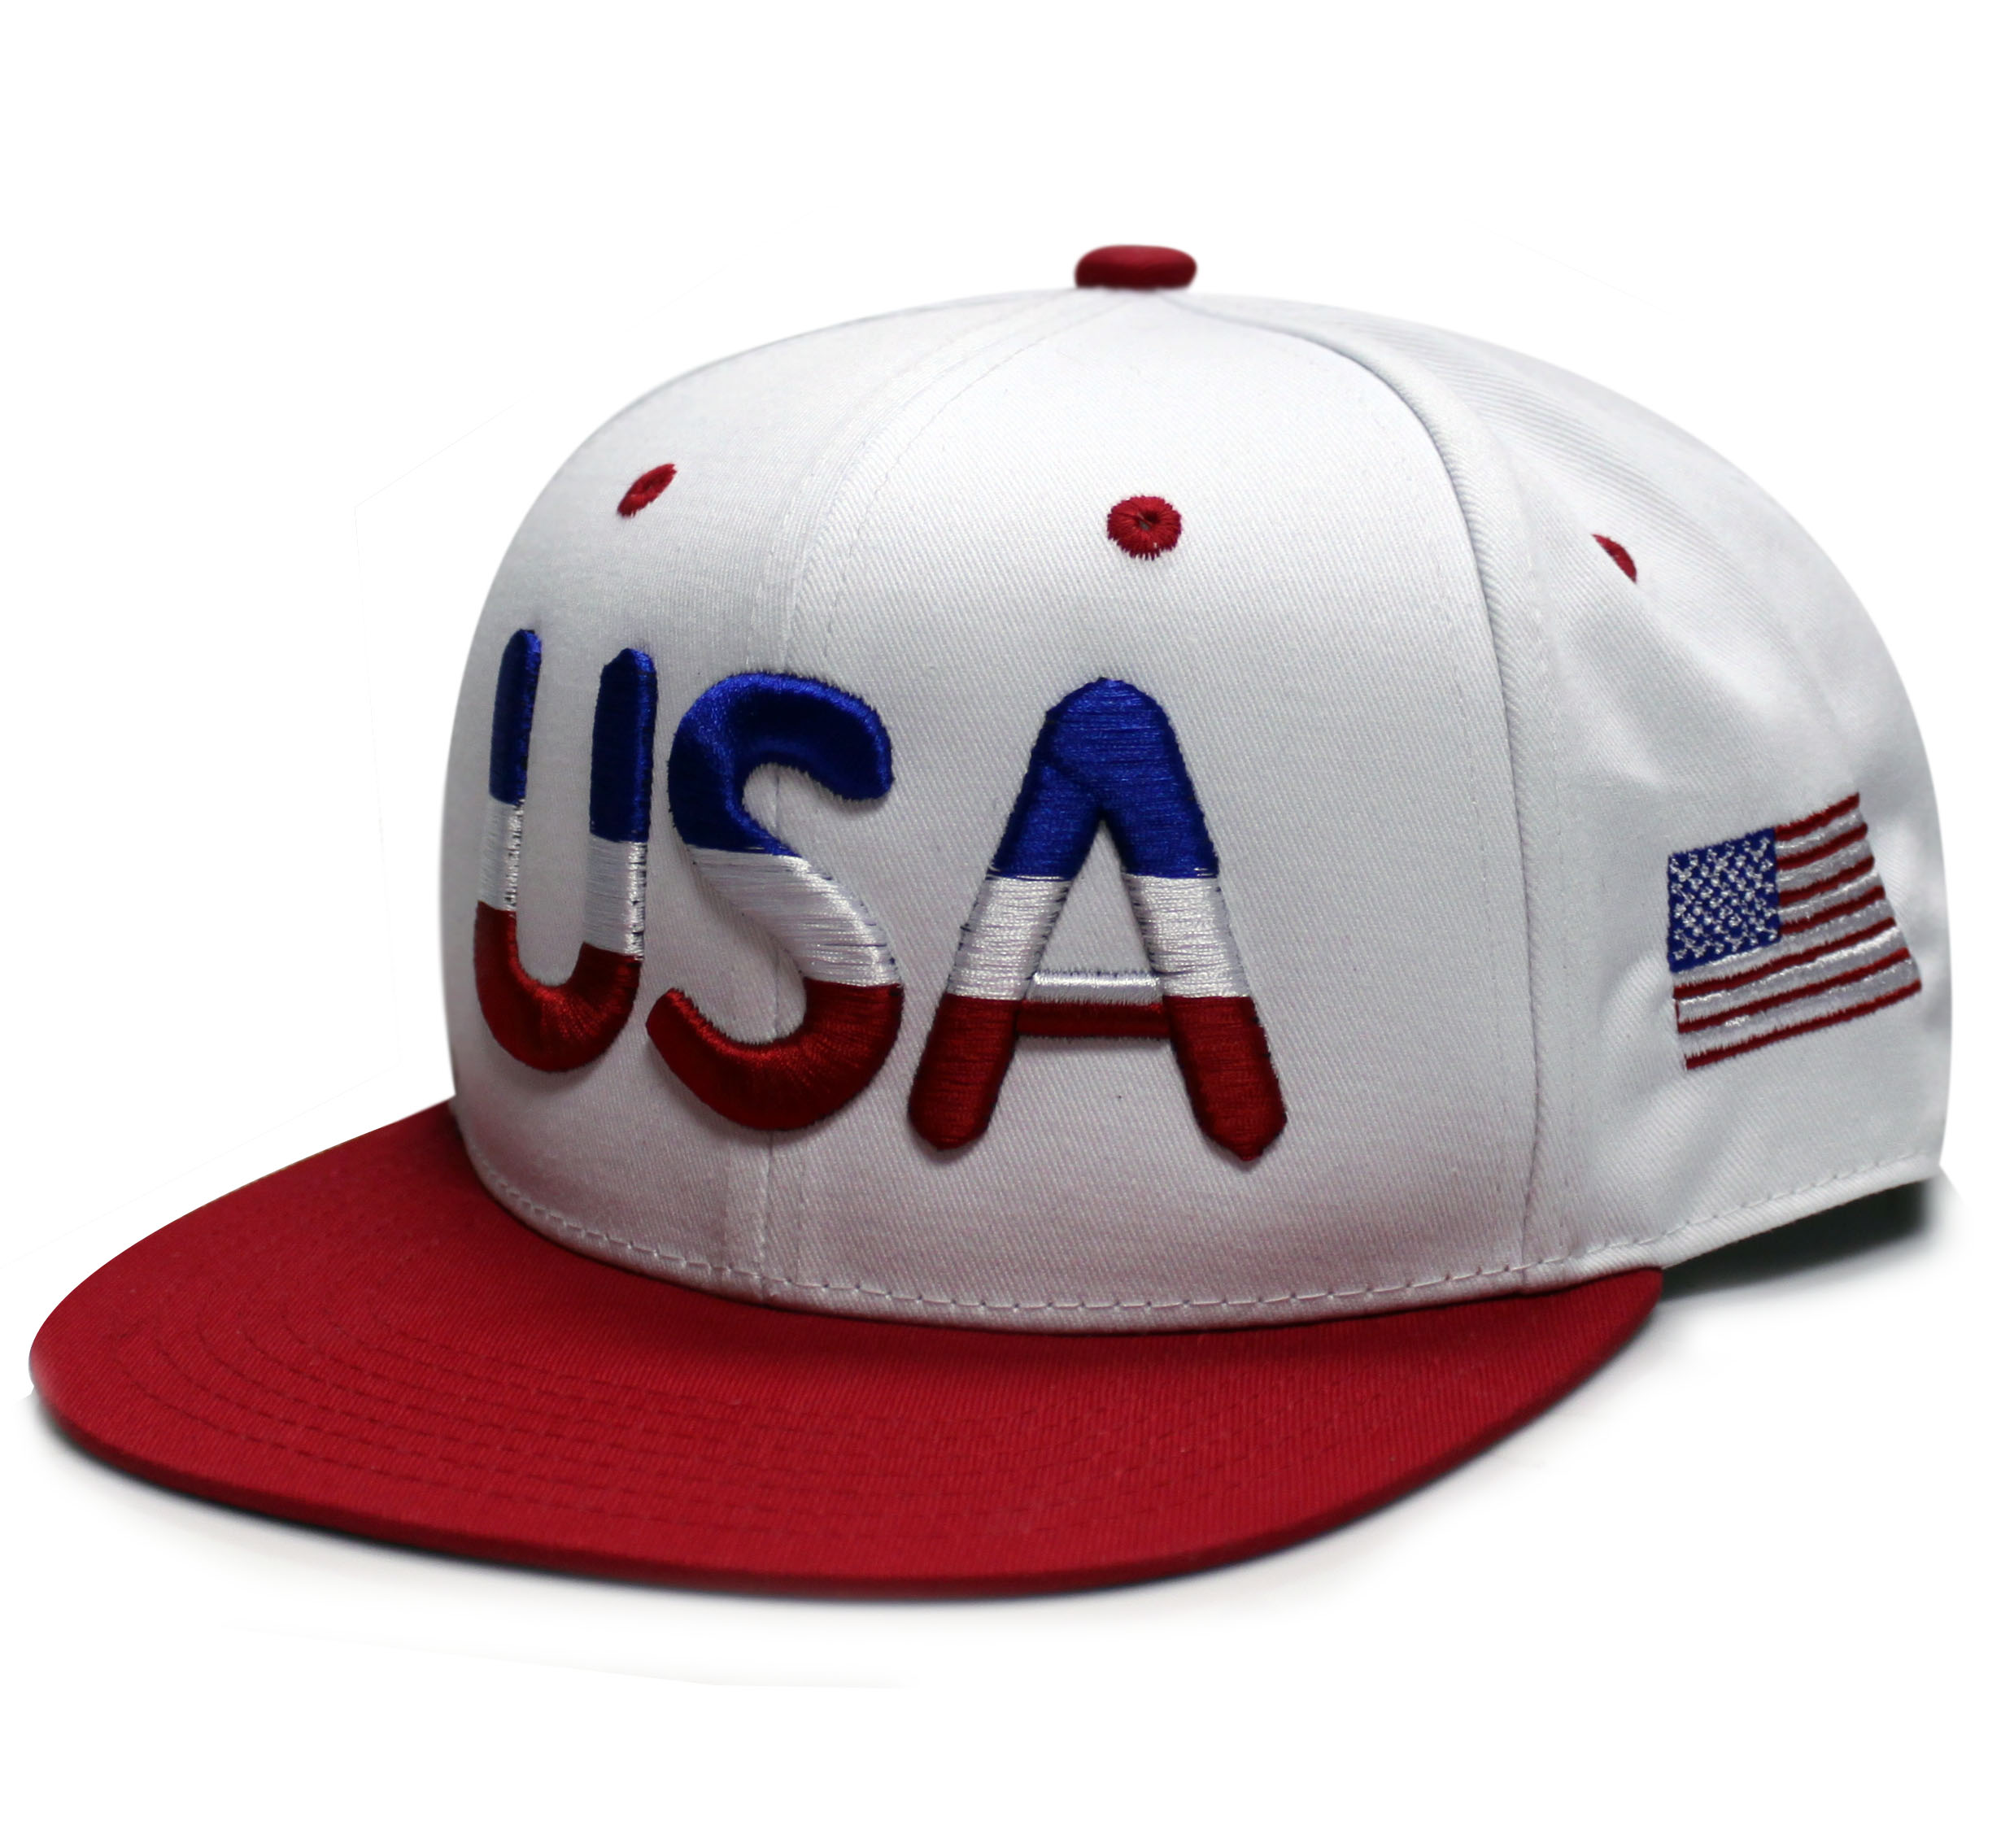 c34b4aa4faf33 City Hunter Cap USA Releases their New Line of Patriotic Hats for the 4th  of July